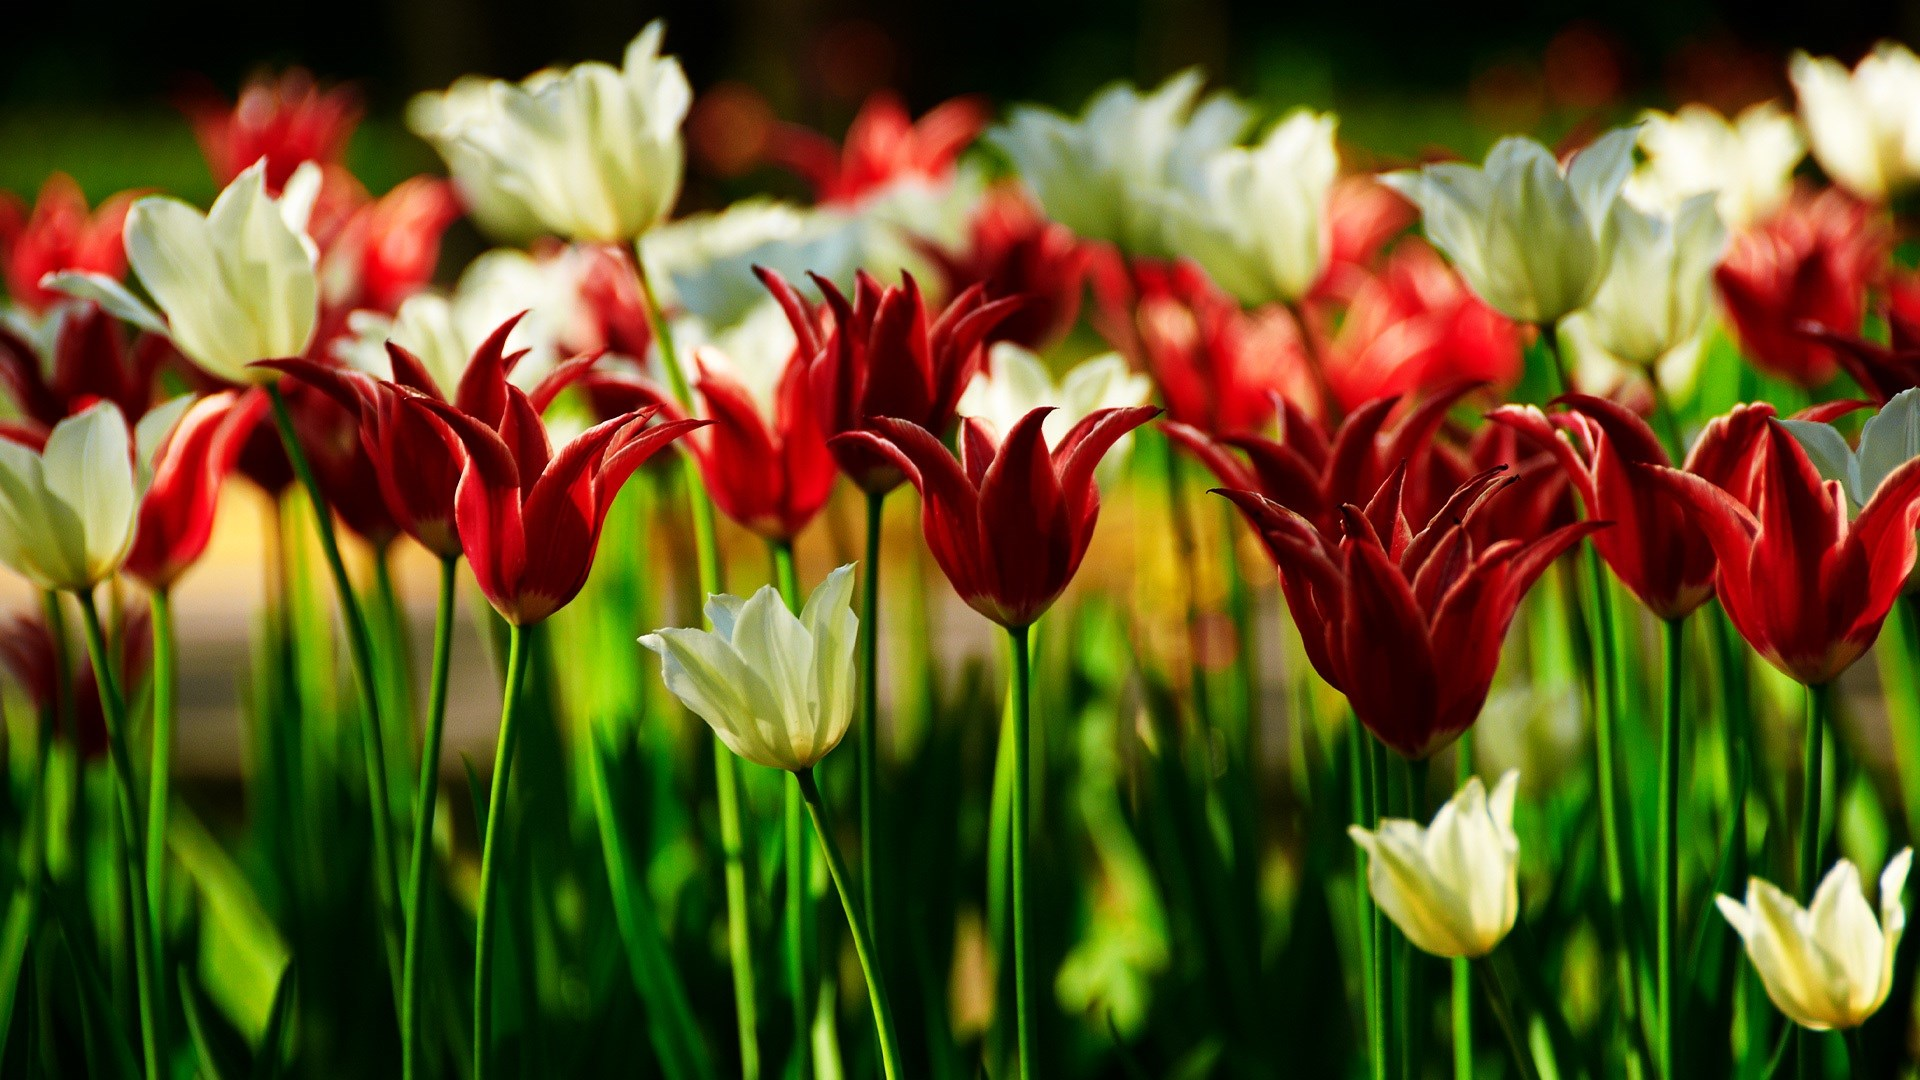 Tulips Kingsblood Field Tulips Hd Wallpaper High Definition